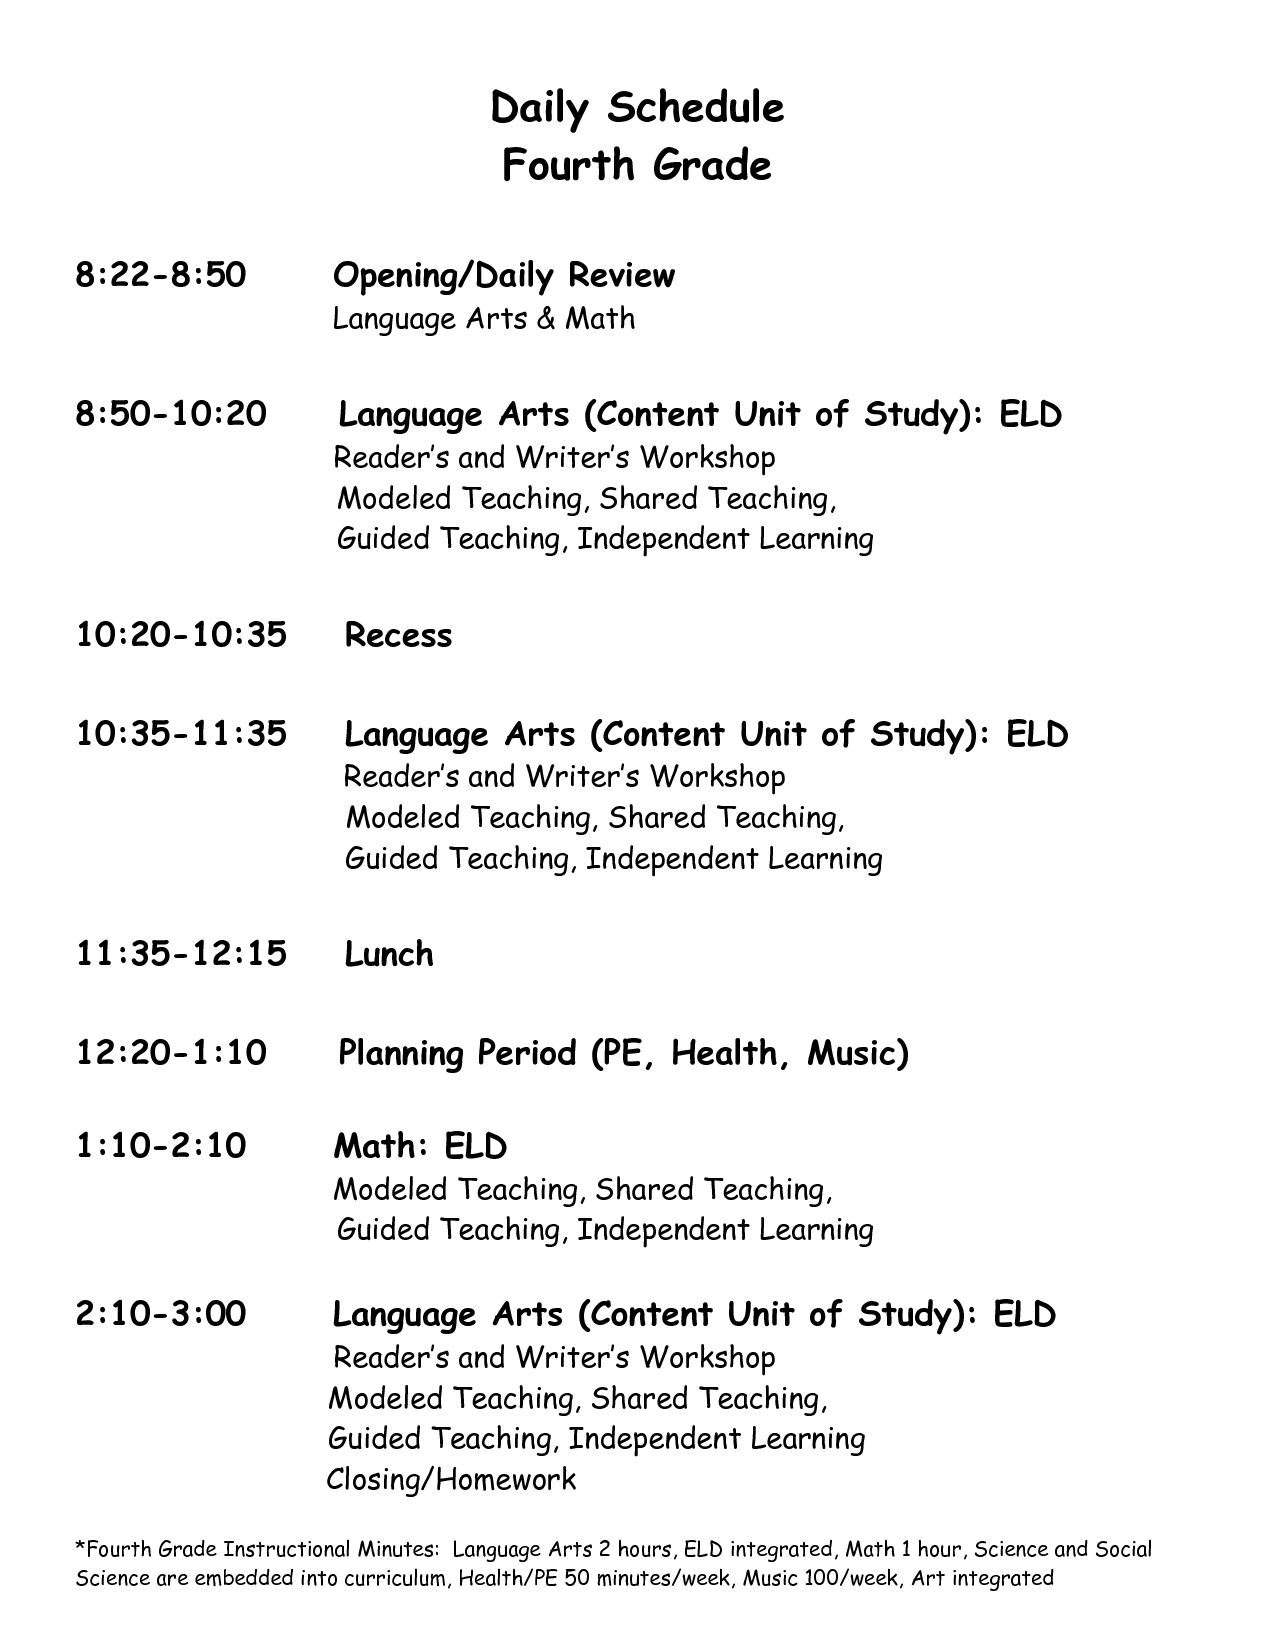 3rd grade classroom daily schedule - Google Search | Ms. Madera ...